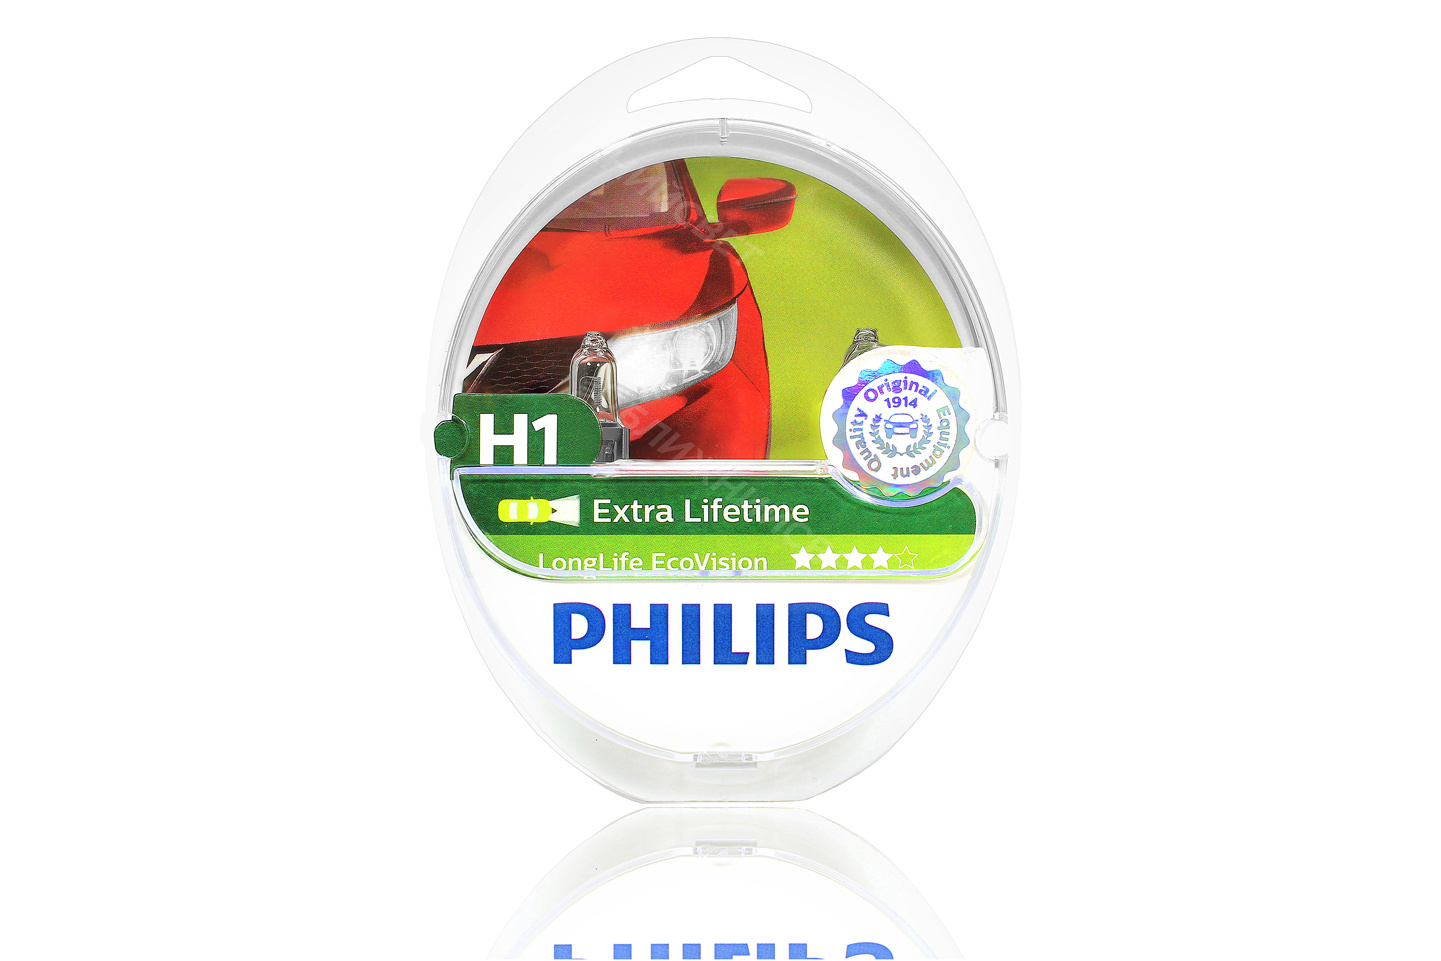 Фото Комплект галогенных автоламп PHILIPS H1 LONG LIFE ECO VISION (12V, 55W) (Германия) (12258LLECOS2) артикул 12258LLECOS2